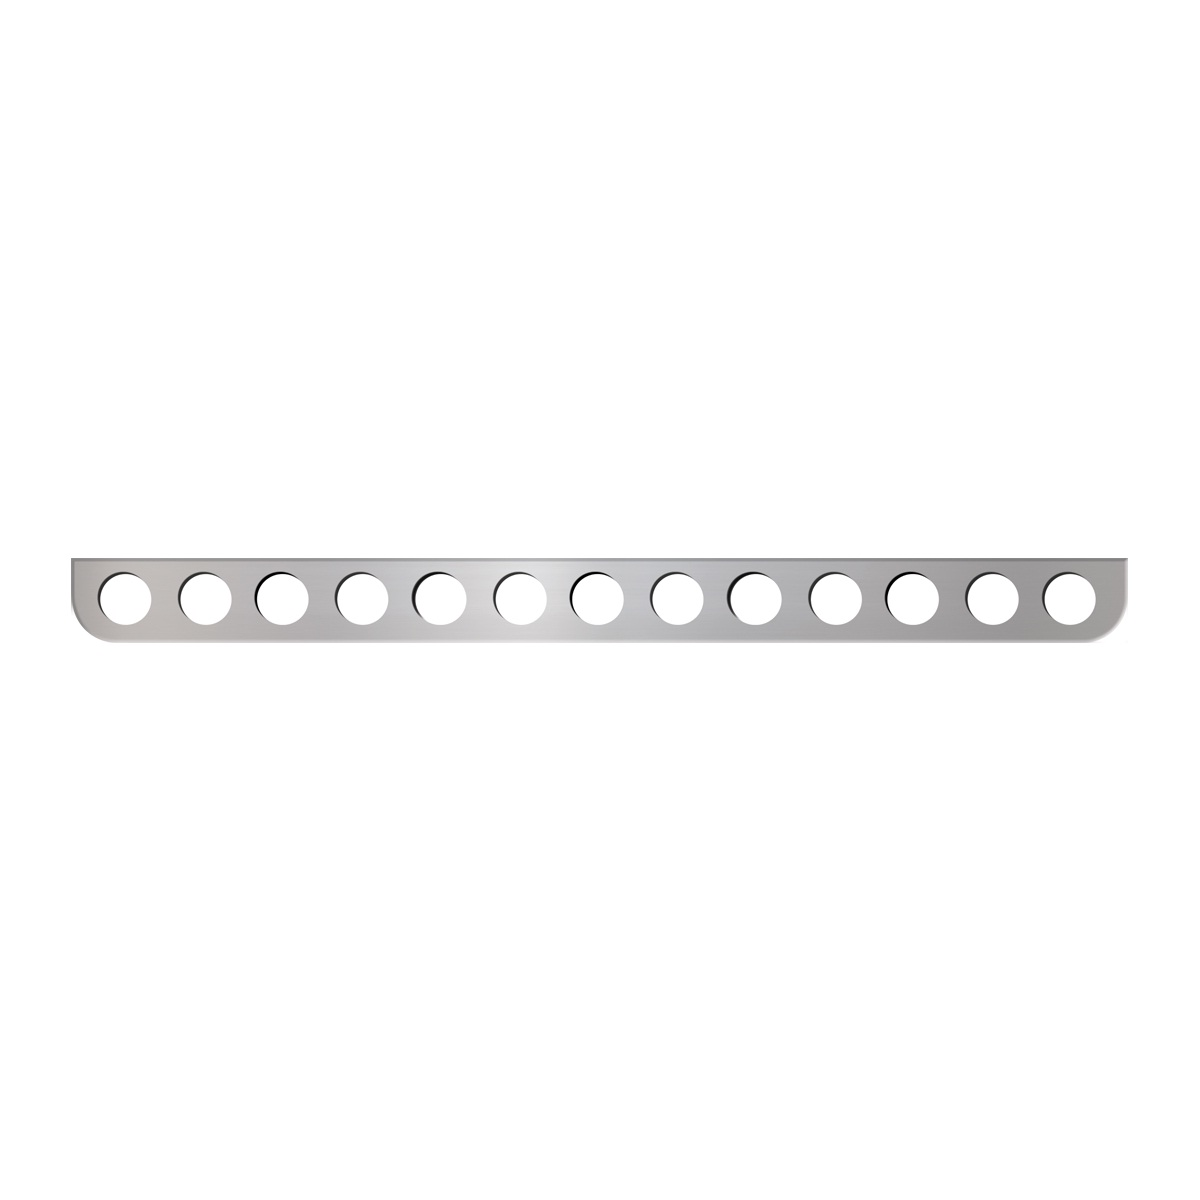 #86029 Stainless Steel 13 Lights Bracket Only